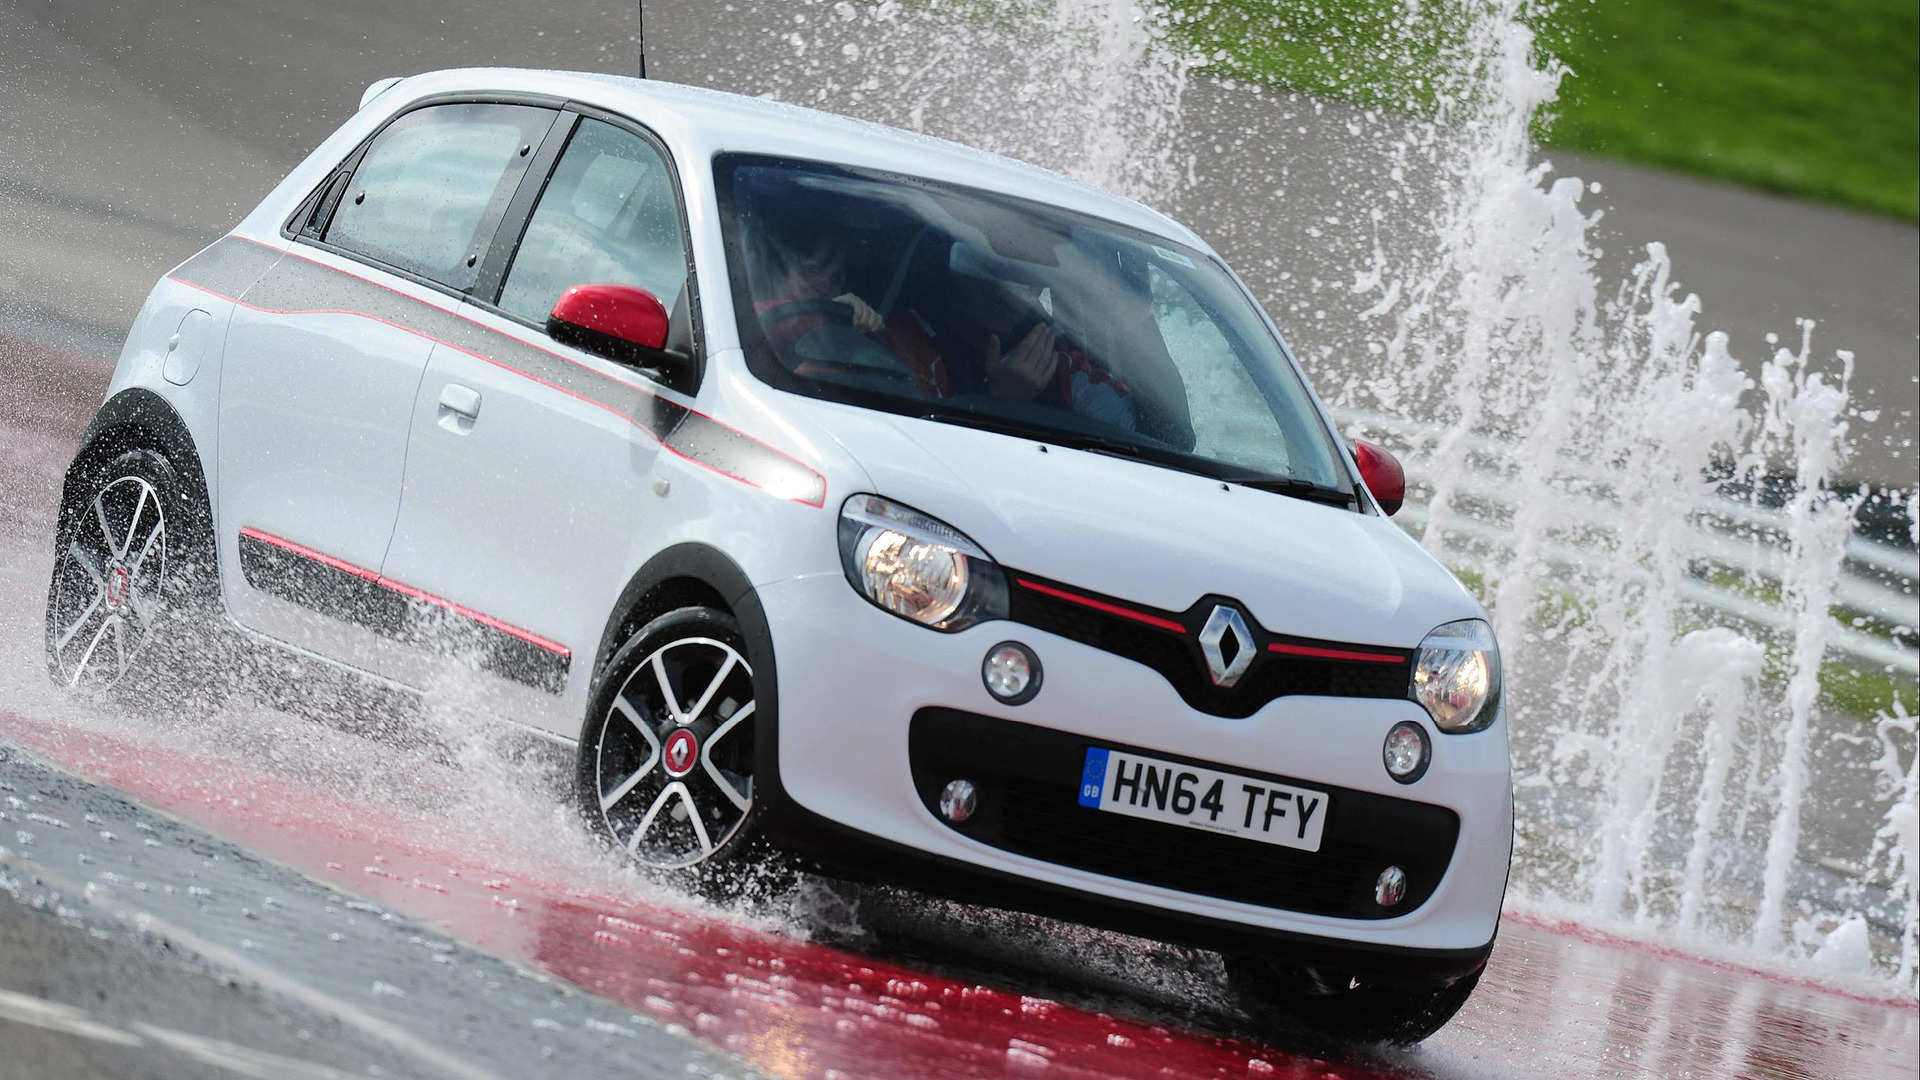 2014 Renault Twingo Review Cute But Flawed Cruise Control Diagram